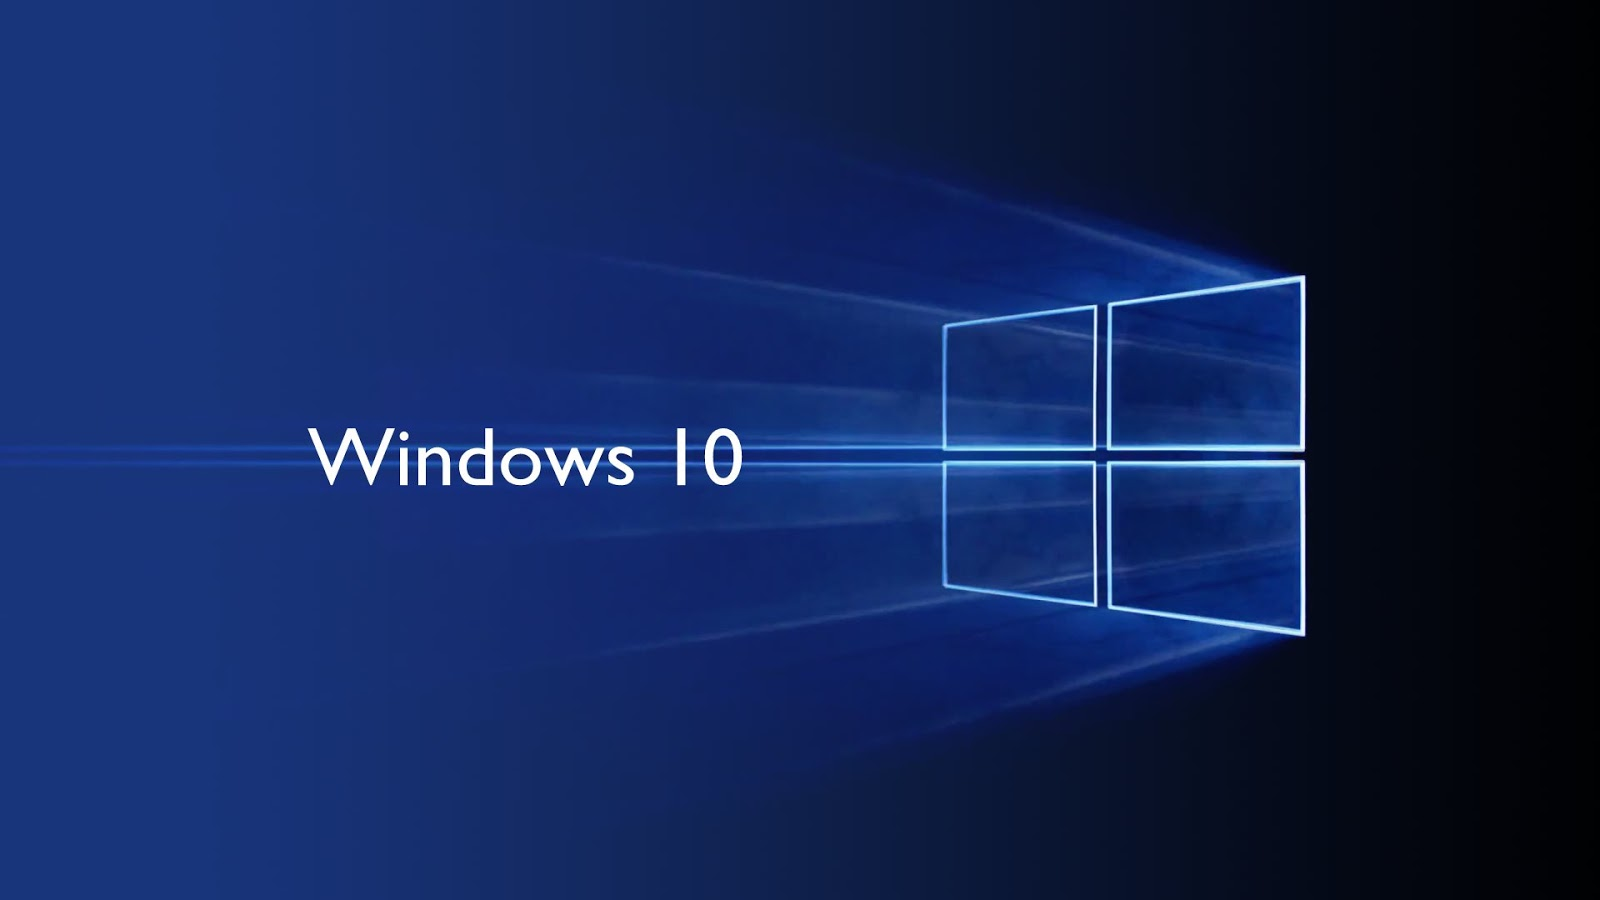 How to disible Windows 10 Updates, windows 10 updates, windows tips and tricks, windows apps, windows solution for free,Services and application